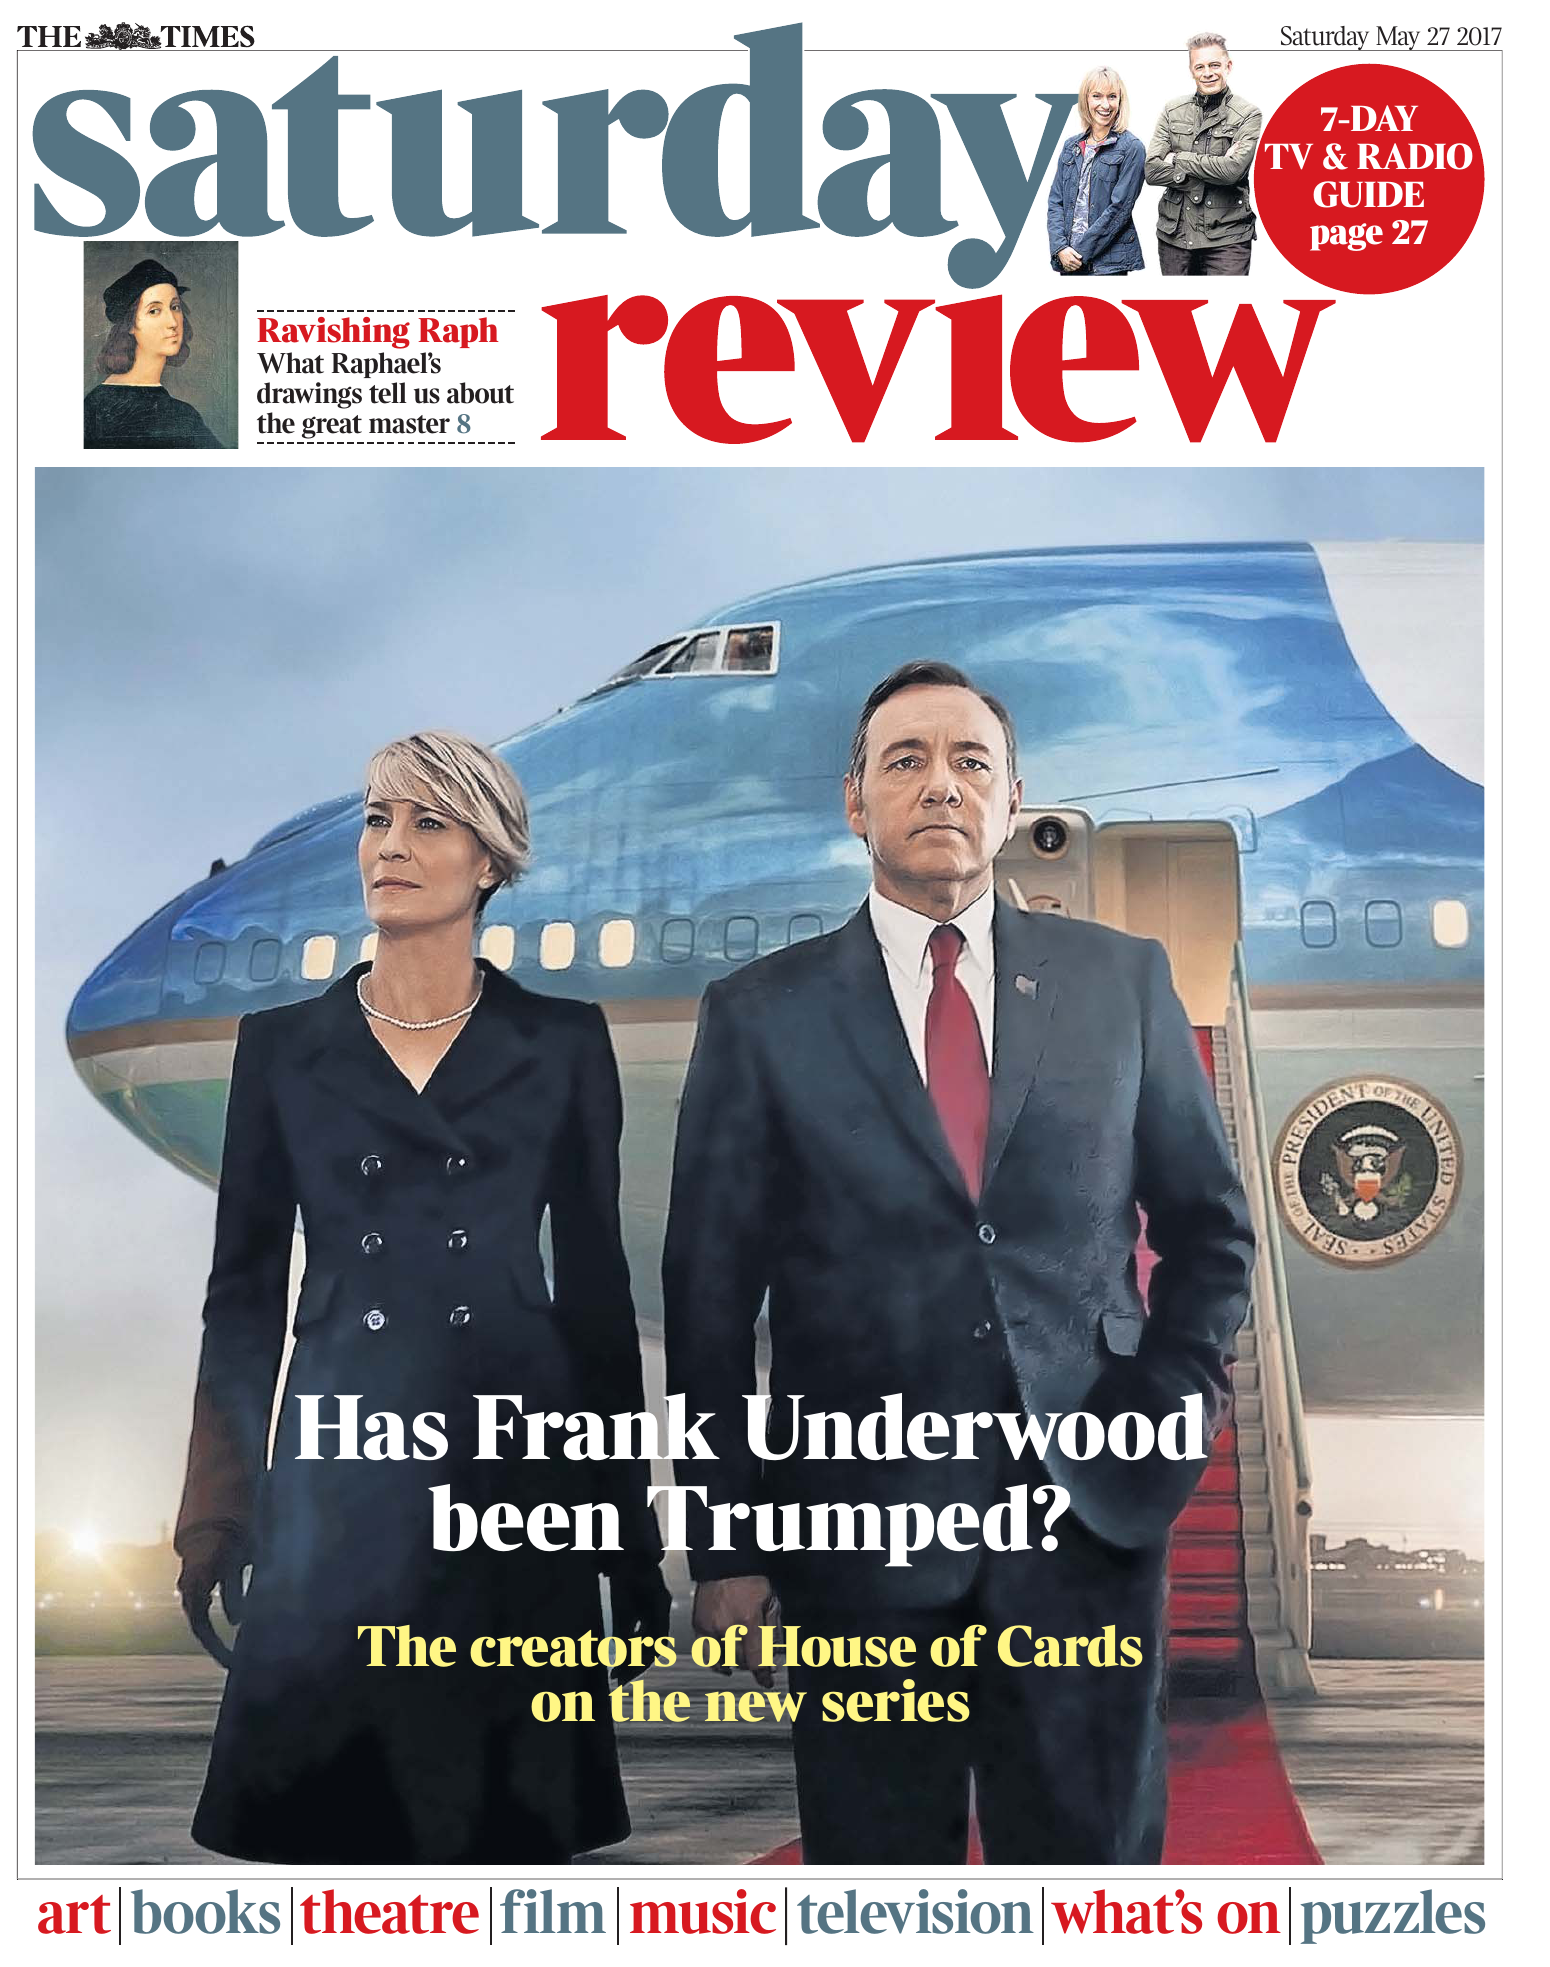 The_Times_Saturday_Review_27_May_2017